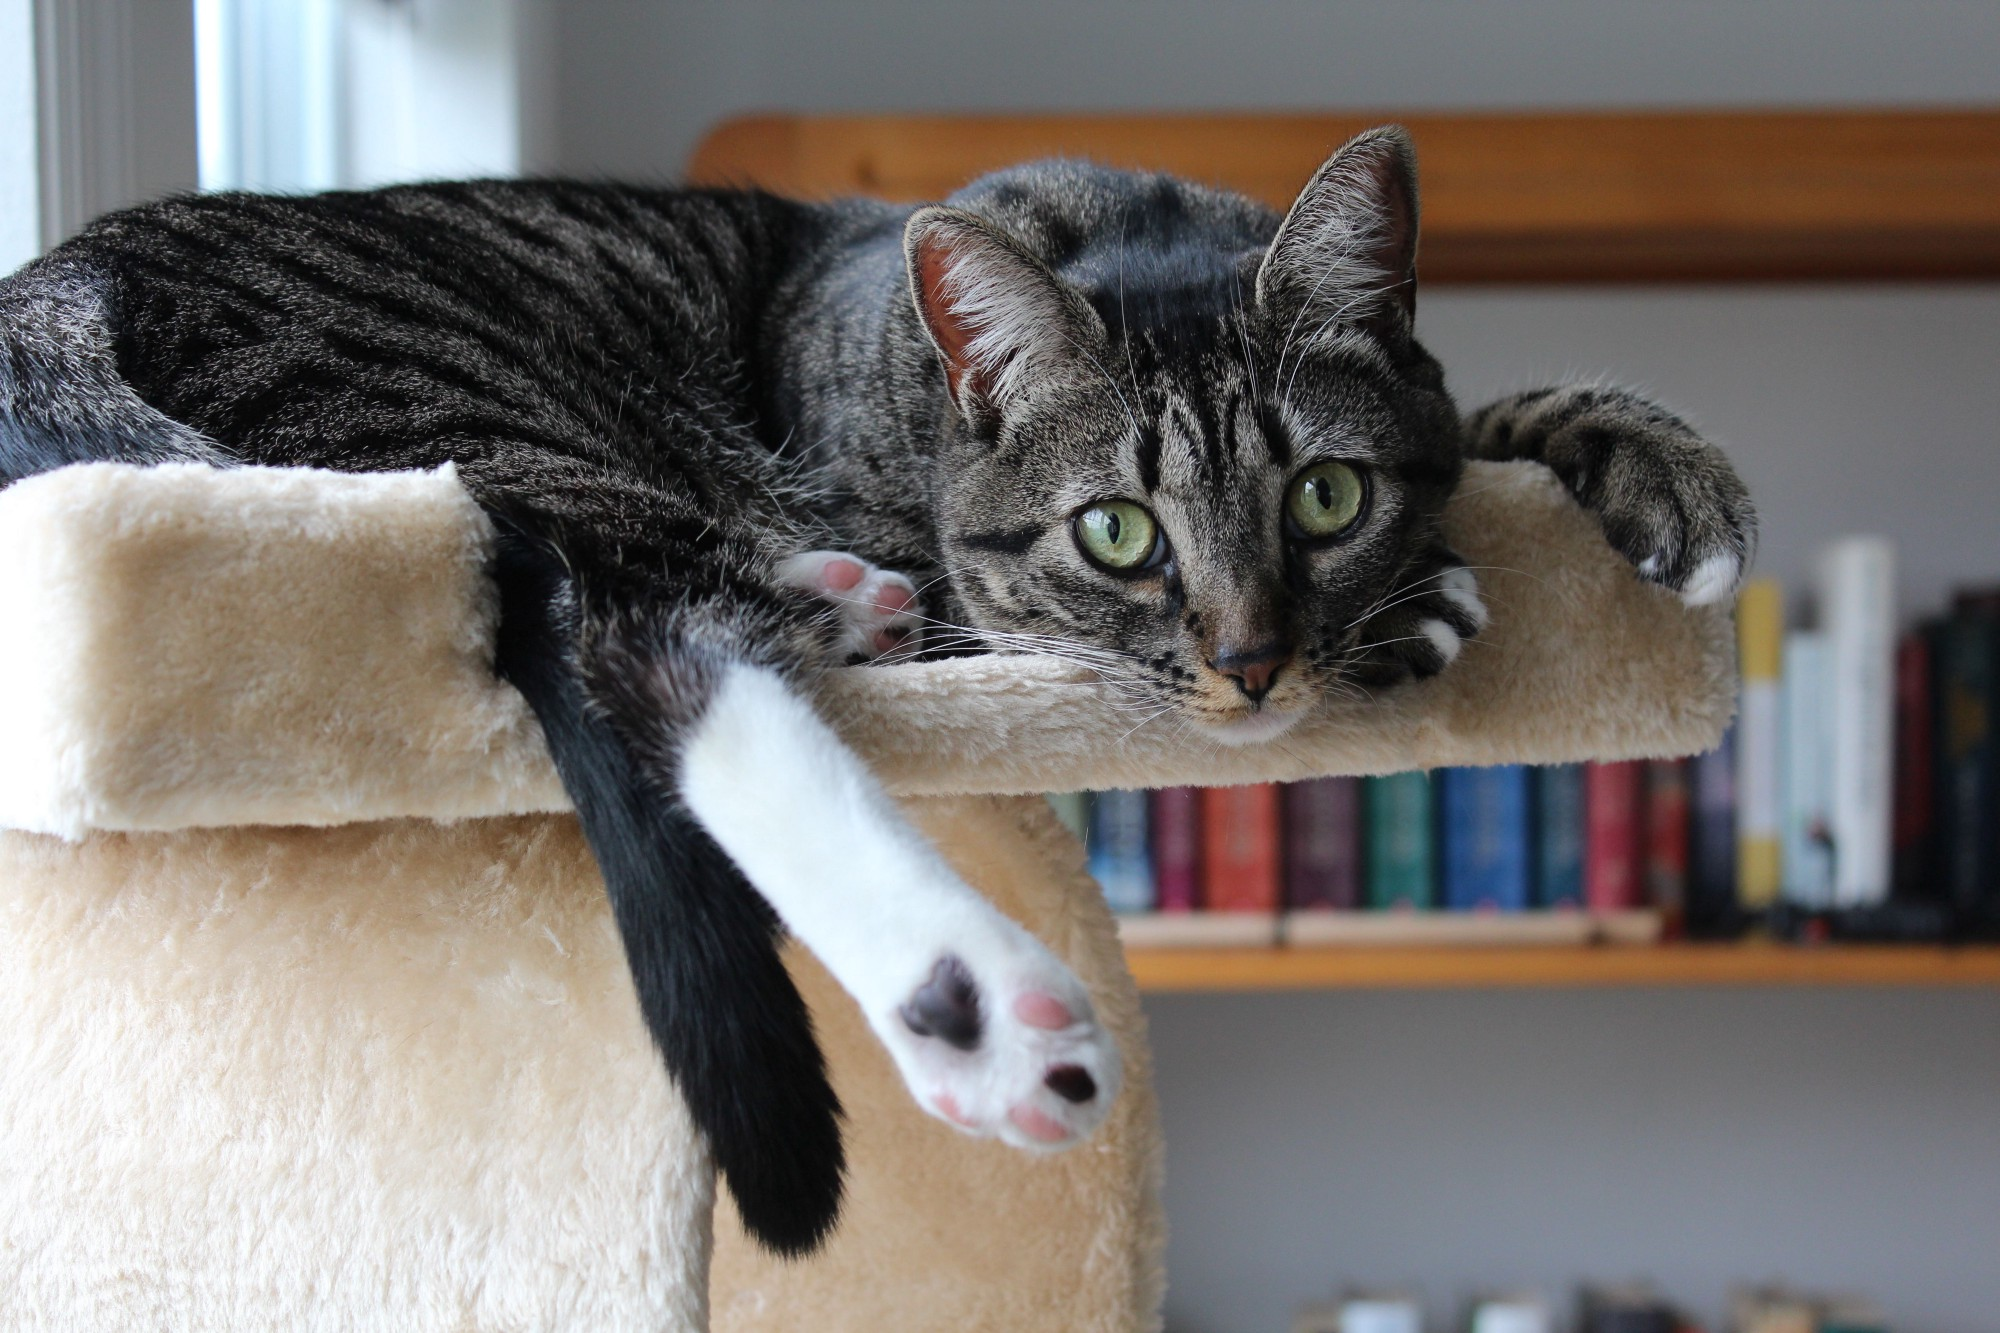 The cutest tabby cat you've ever seen sitting atop her cat tree staring into the camera.